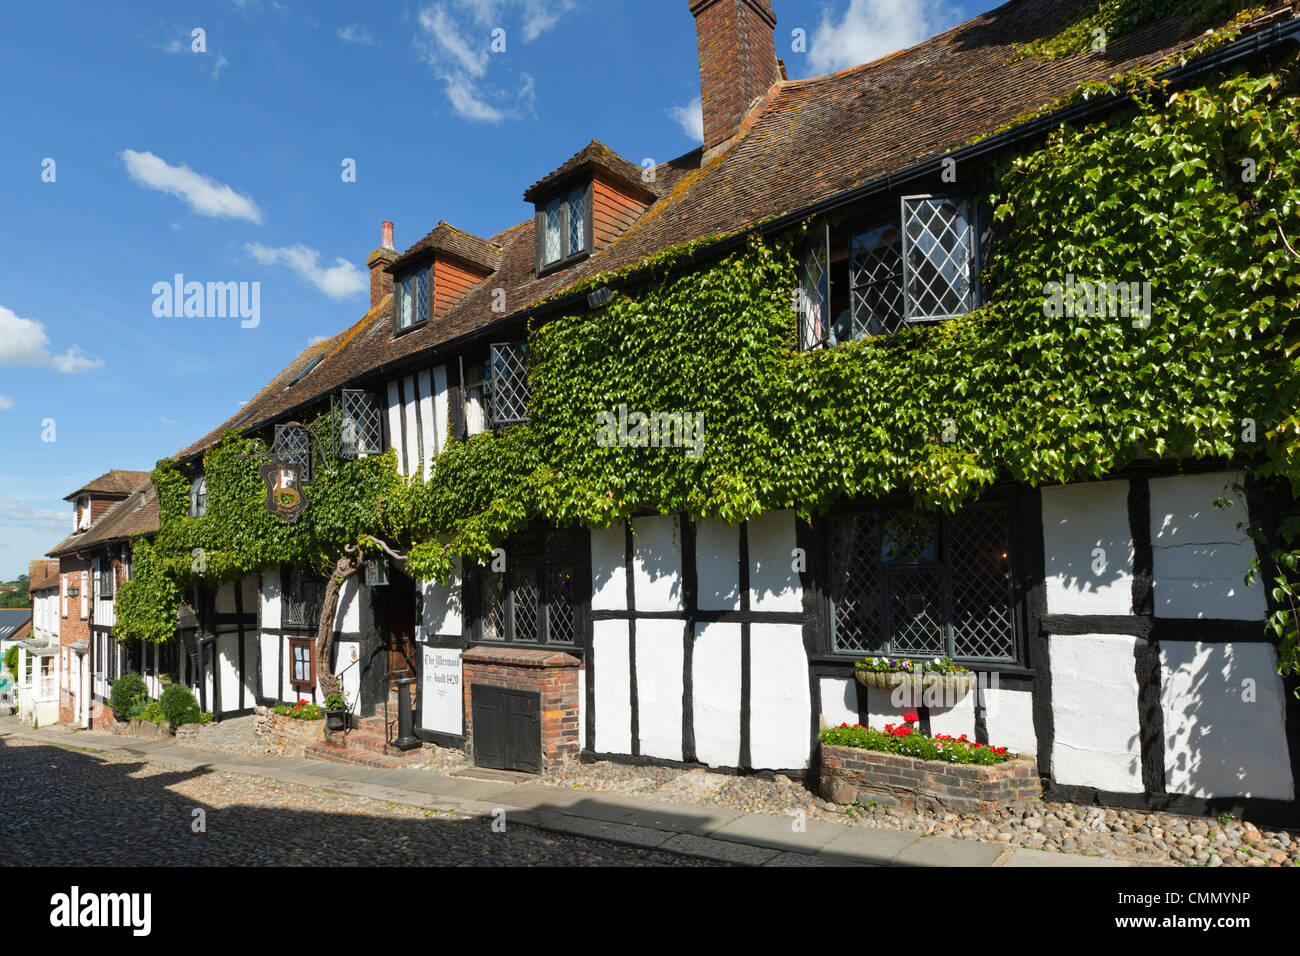 Mermaid Inn, Mermaid Street, Rye, East Sussex, Angleterre, Royaume-Uni, Europe Photo Stock